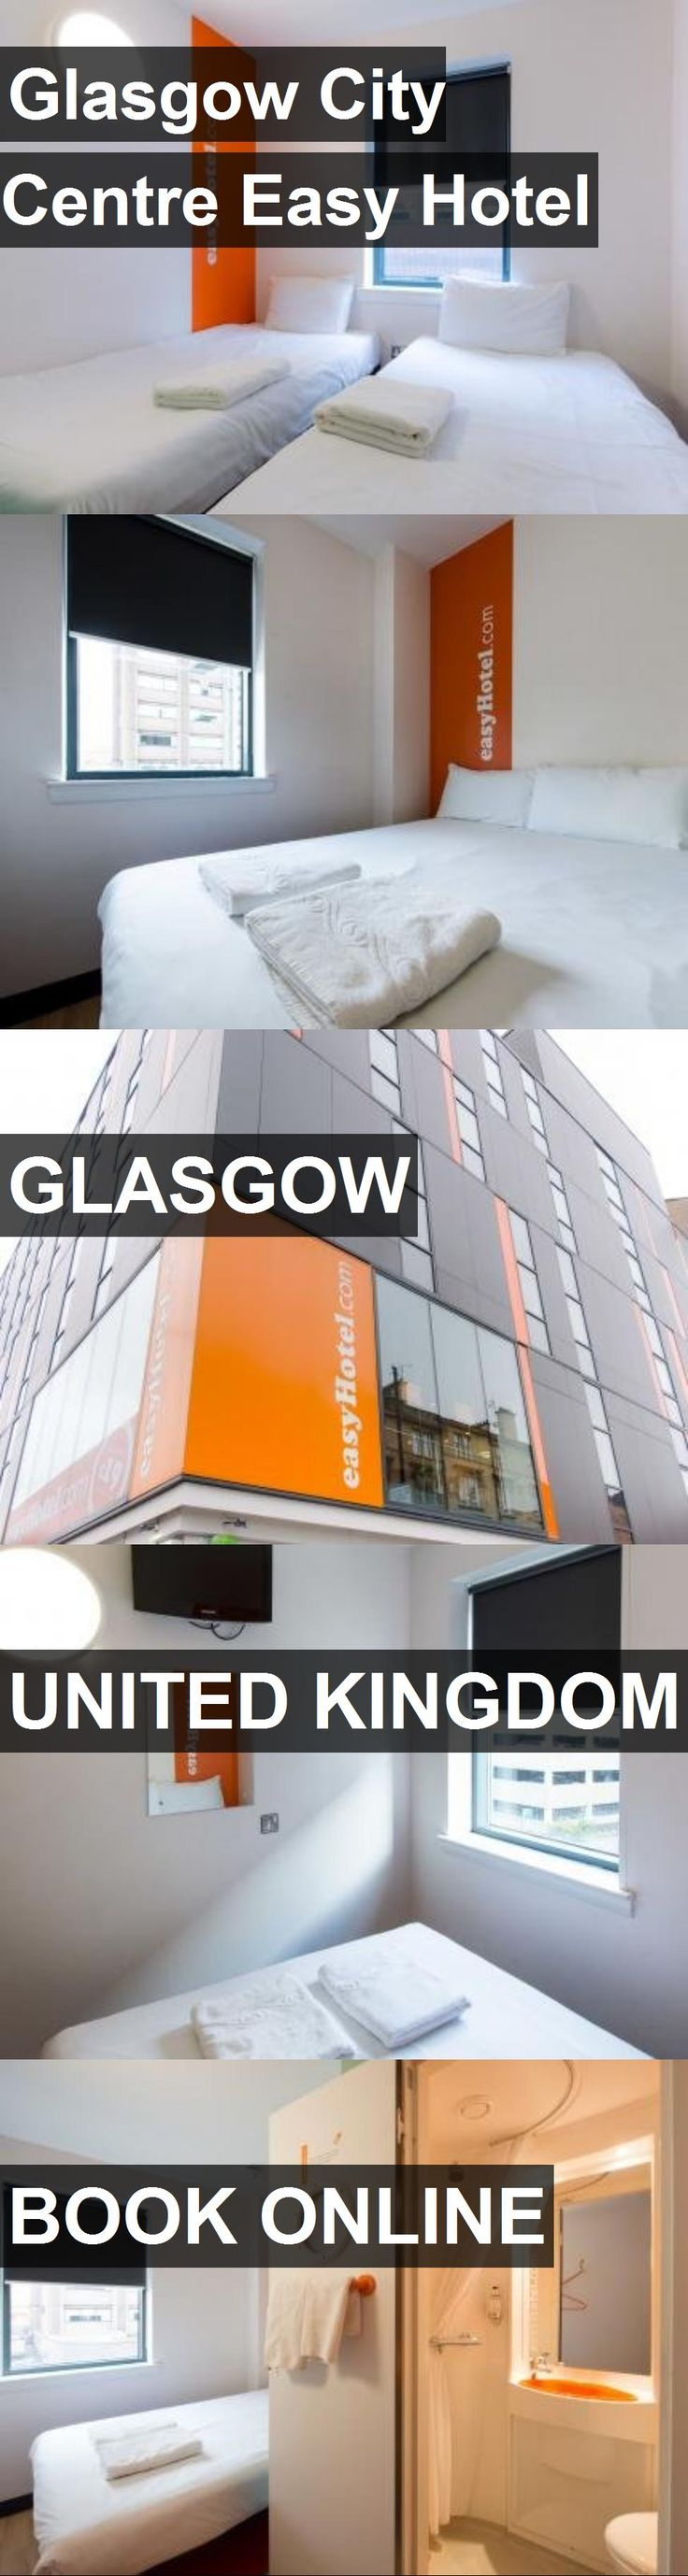 Hotel Glasgow City Centre Easy Hotel in Glasgow, United Kingdom. For more information, photos, reviews and best prices please follow the link. #UnitedKingdom #Glasgow #GlasgowCityCentreEasyHotel #hotel #travel #vacation